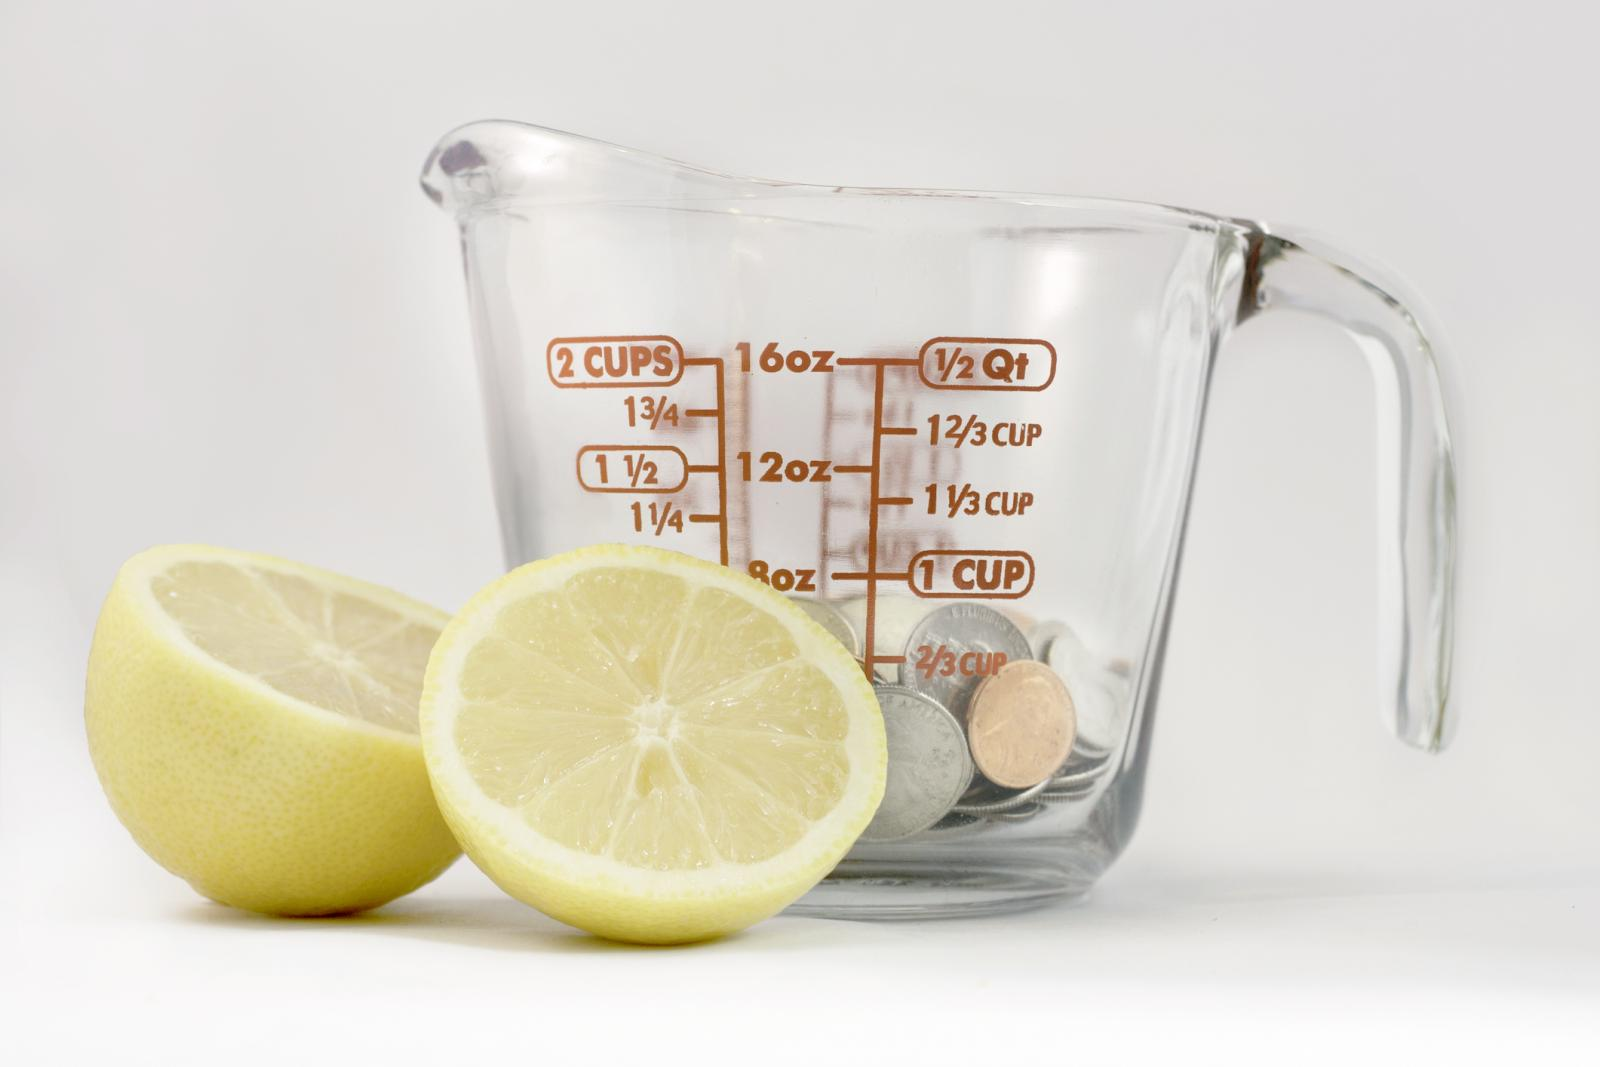 Lemon slices and measuring cup with pennies